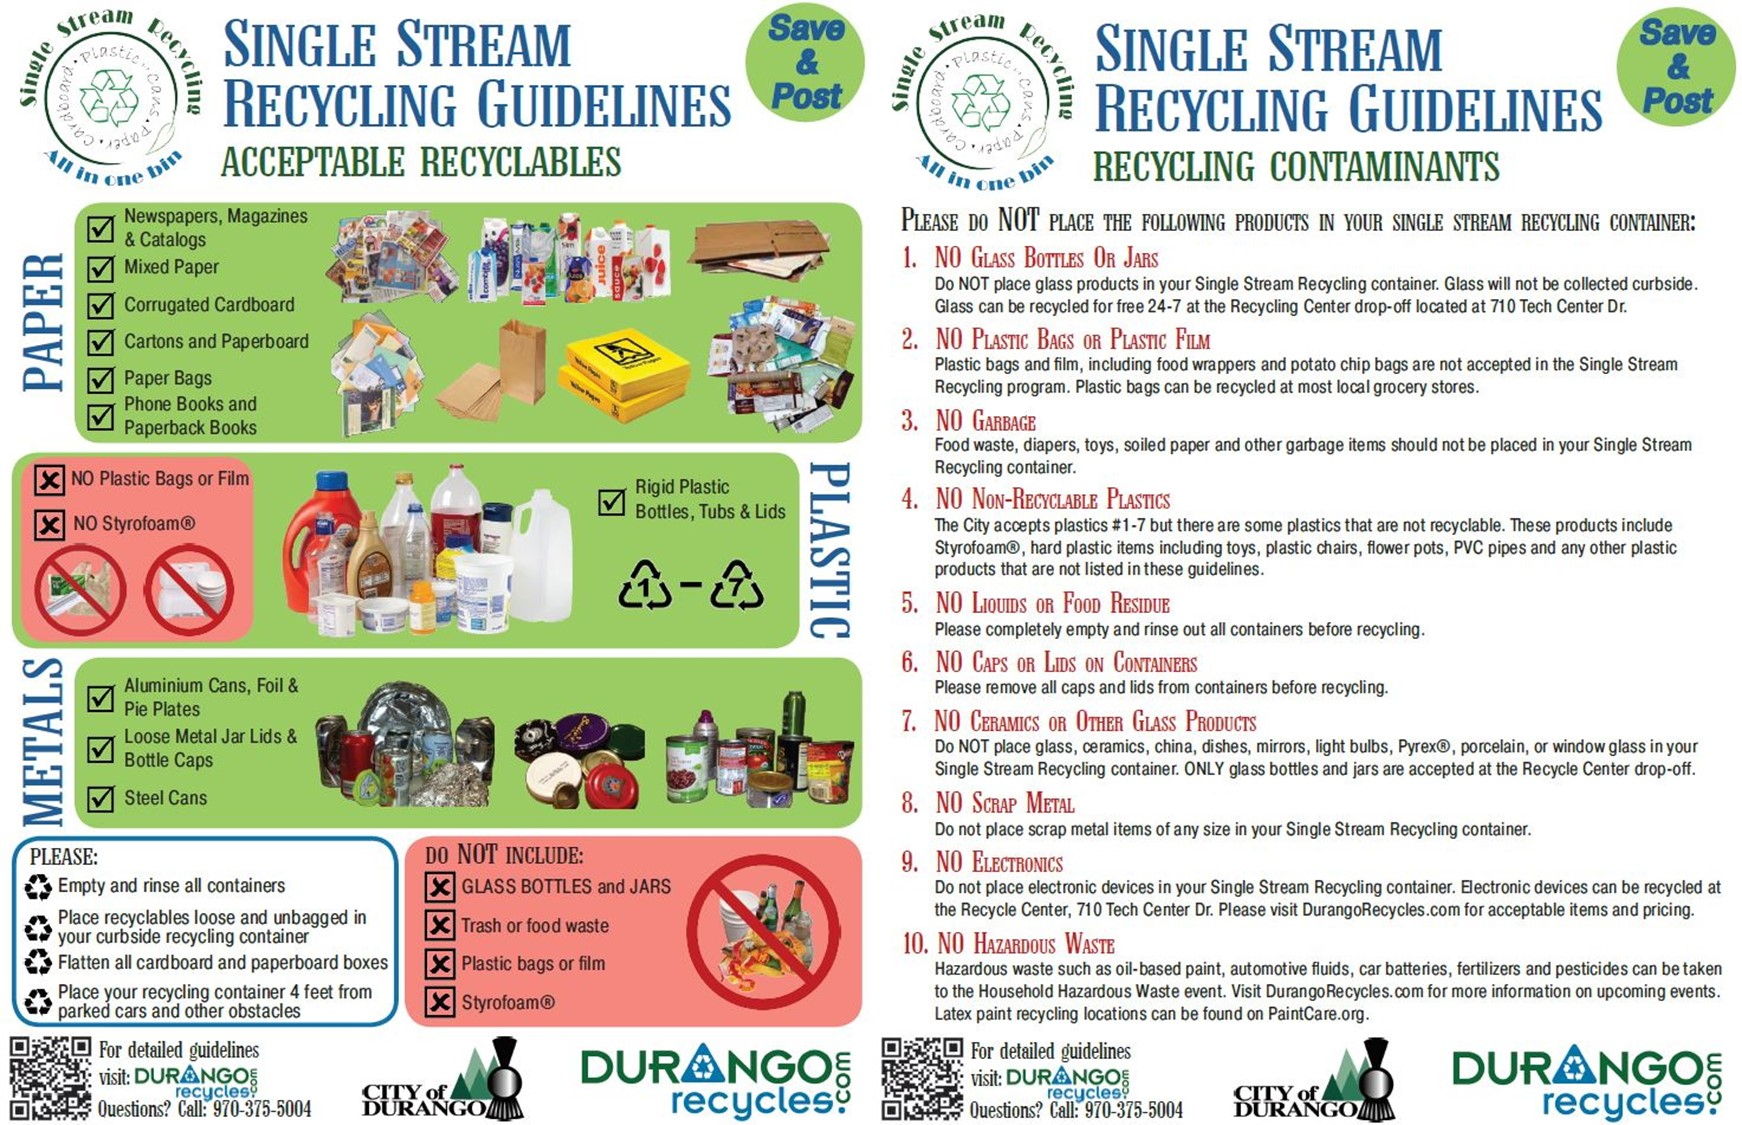 Single Stream Recycling Guidelines